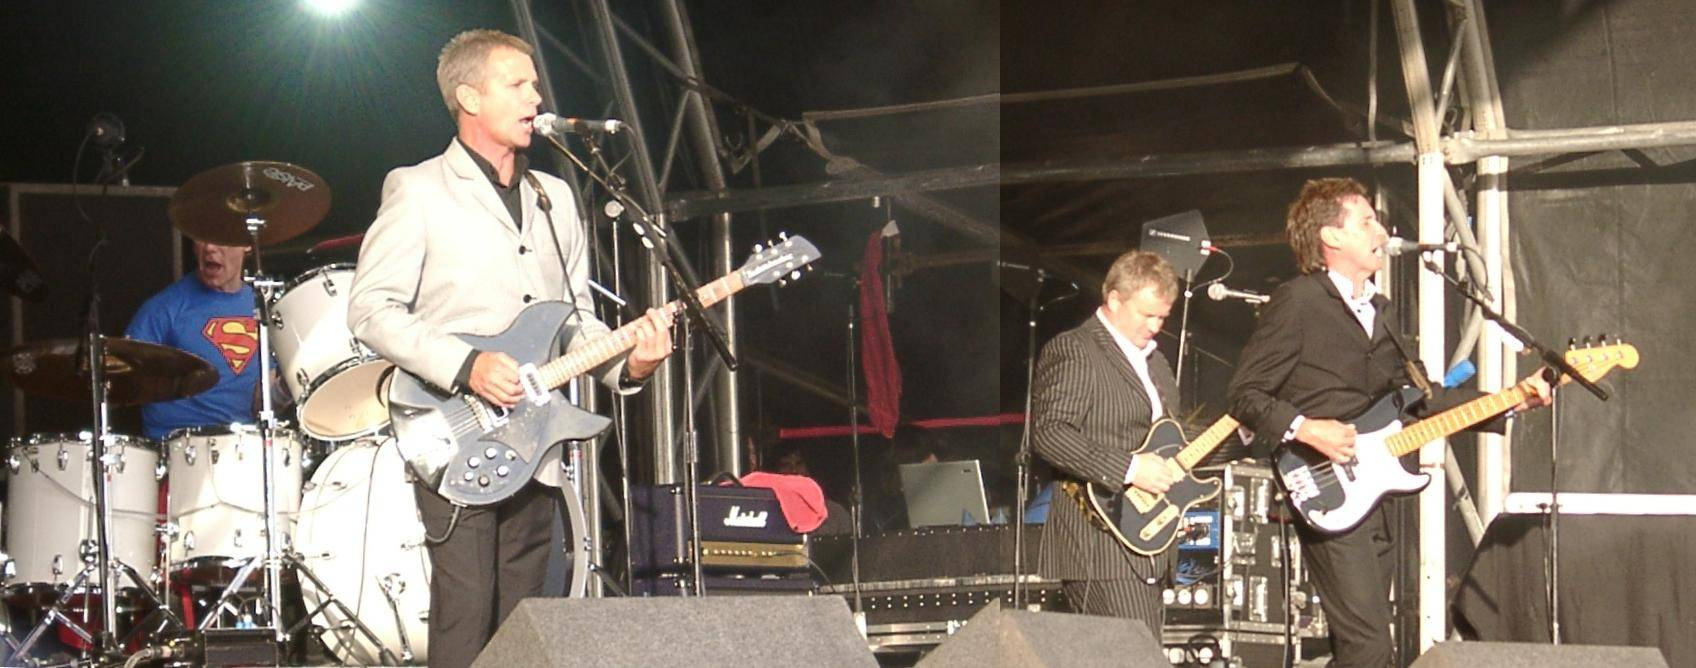 from-the-jam-live-at-guilfest-06july2008-greengoblin co uk